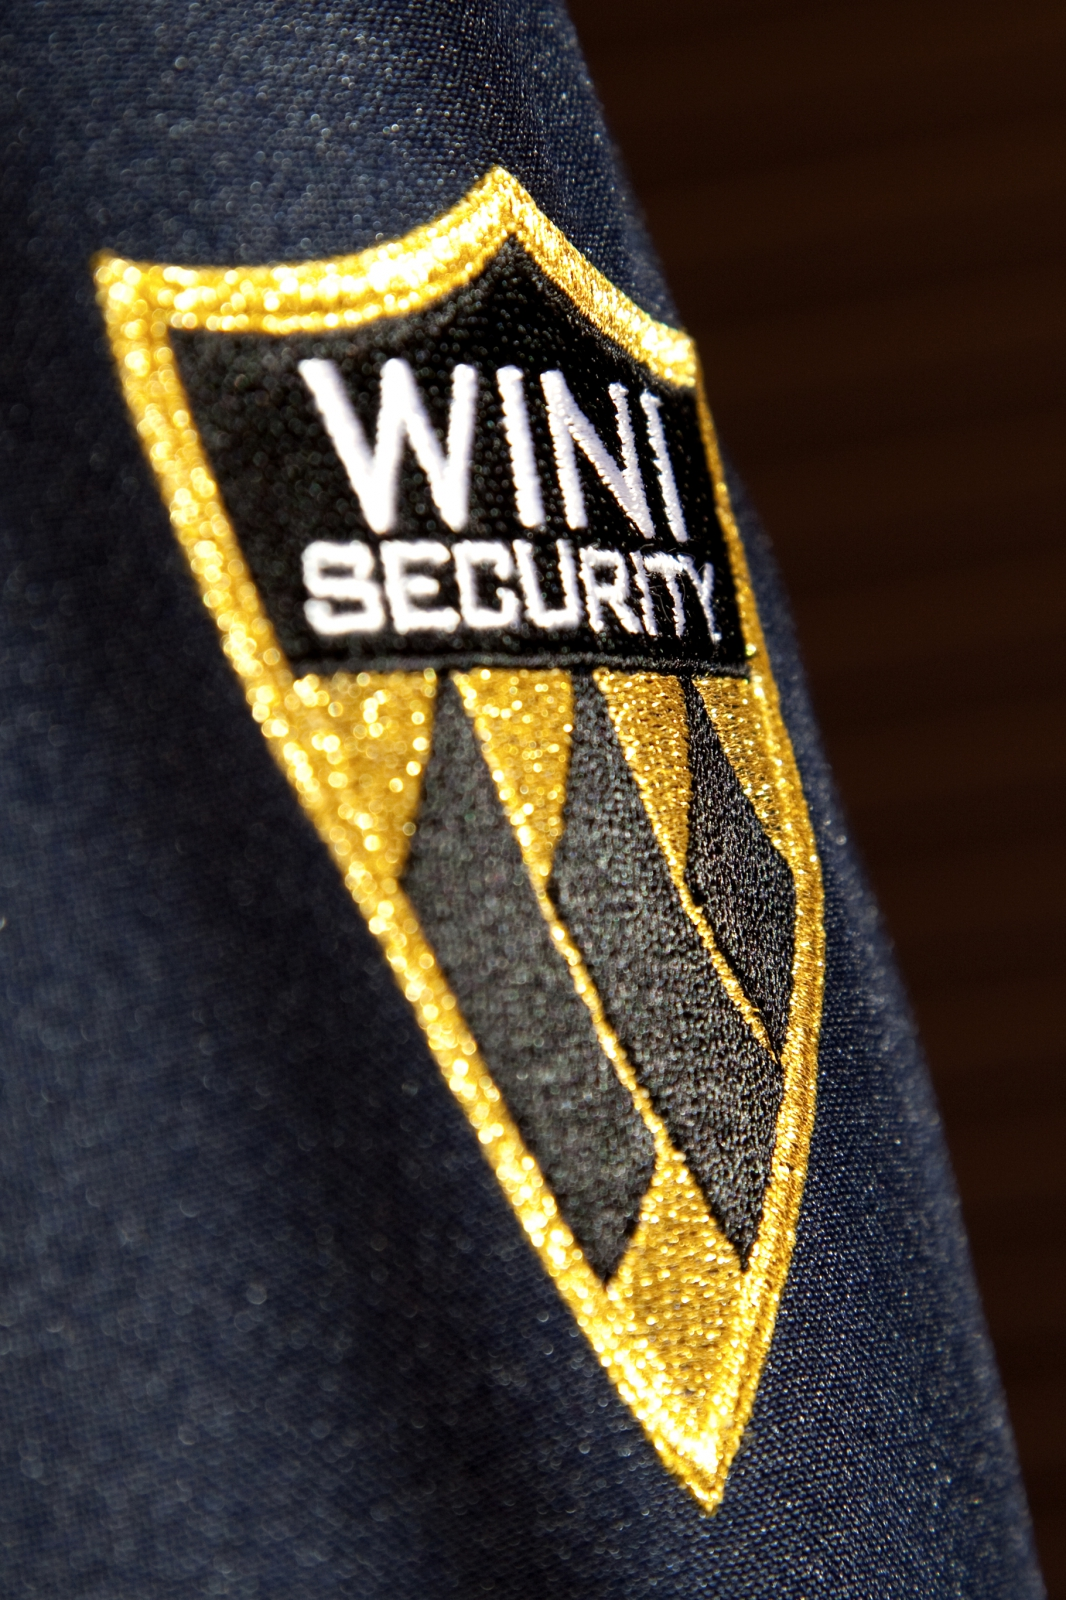 Wini Security 9